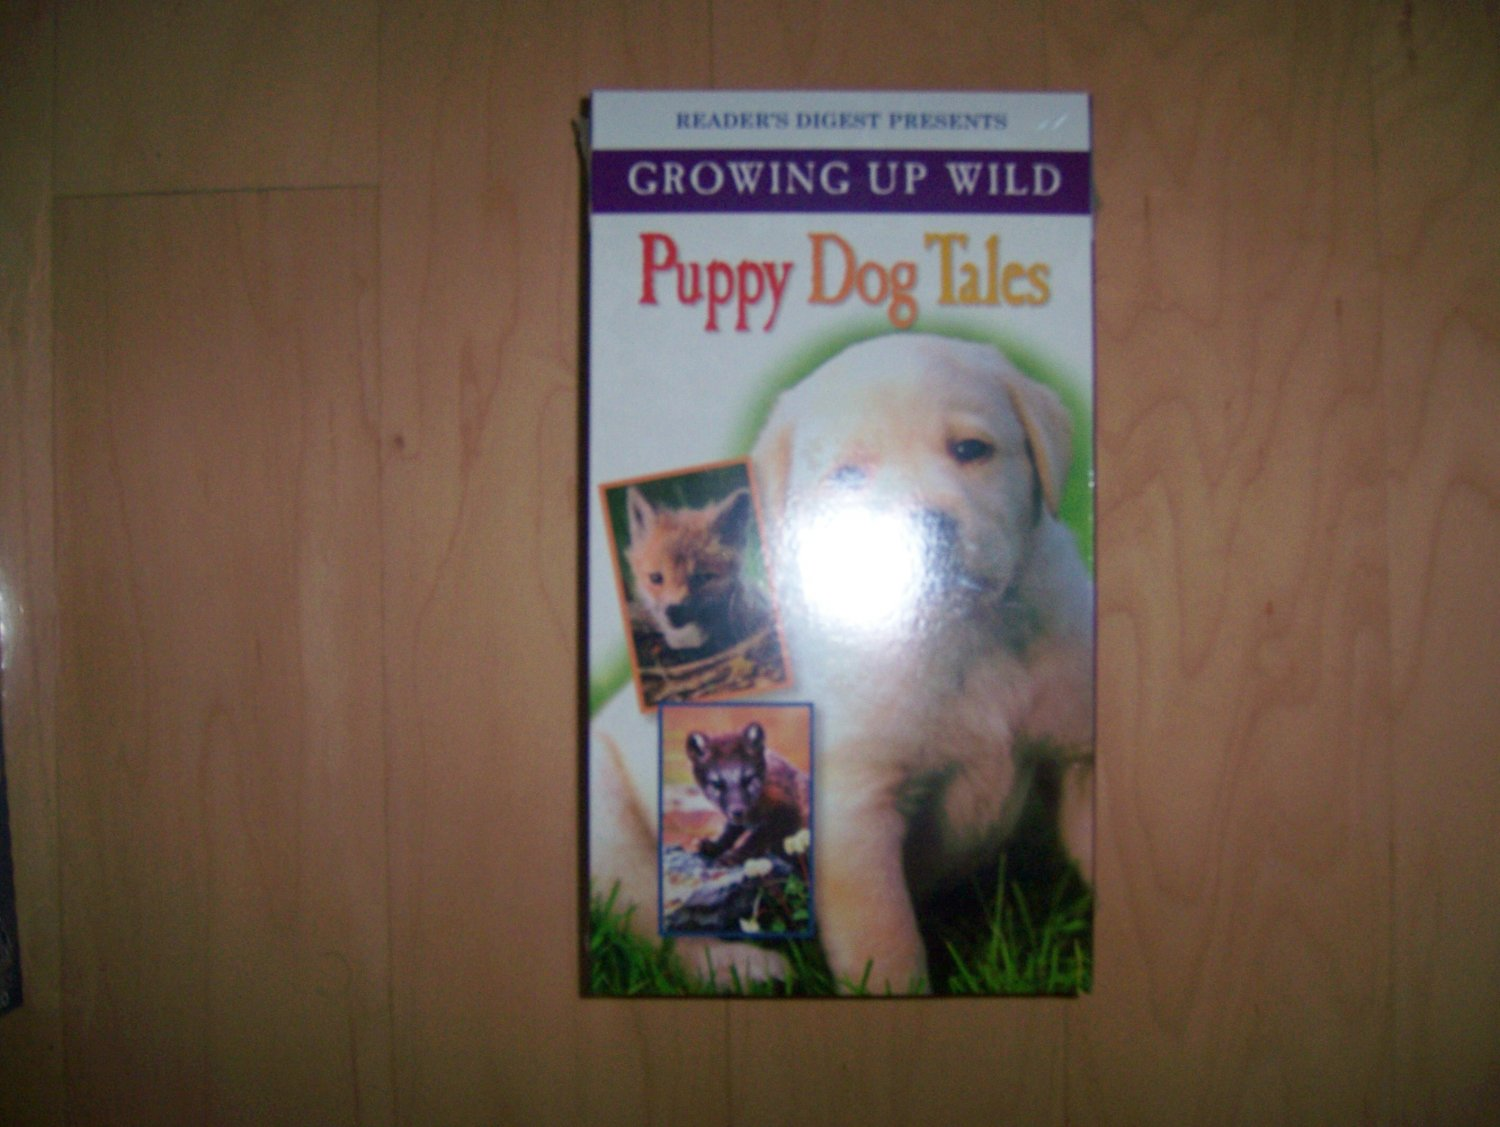 VHS Puppy Dog Tales Growing Up Wild BNK777